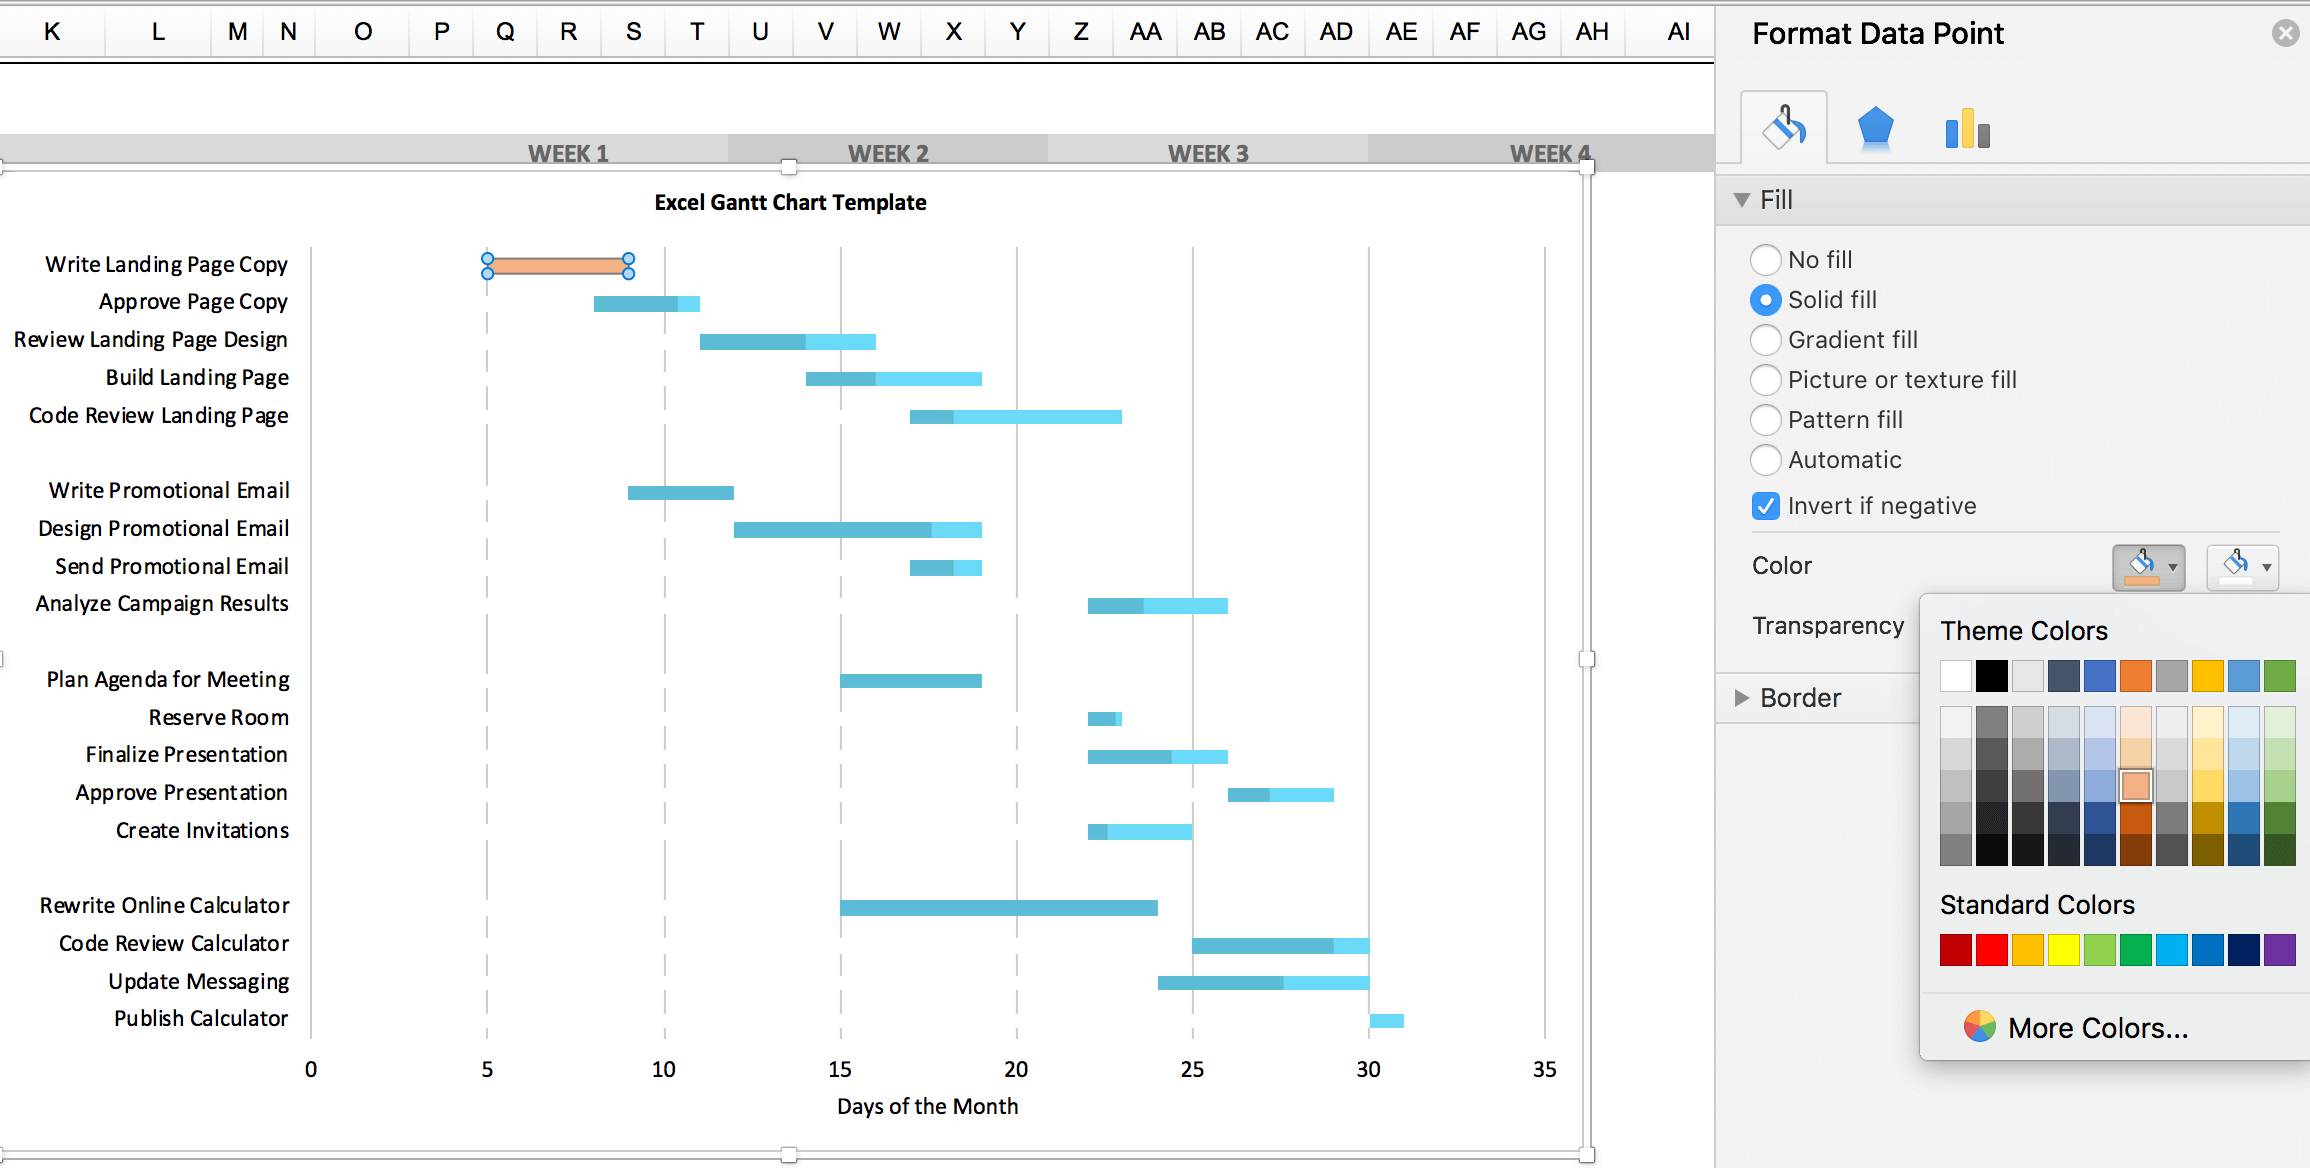 Free Gantt Chart Excel Template: Download Now | Teamgantt For Gantt Chart Template Free